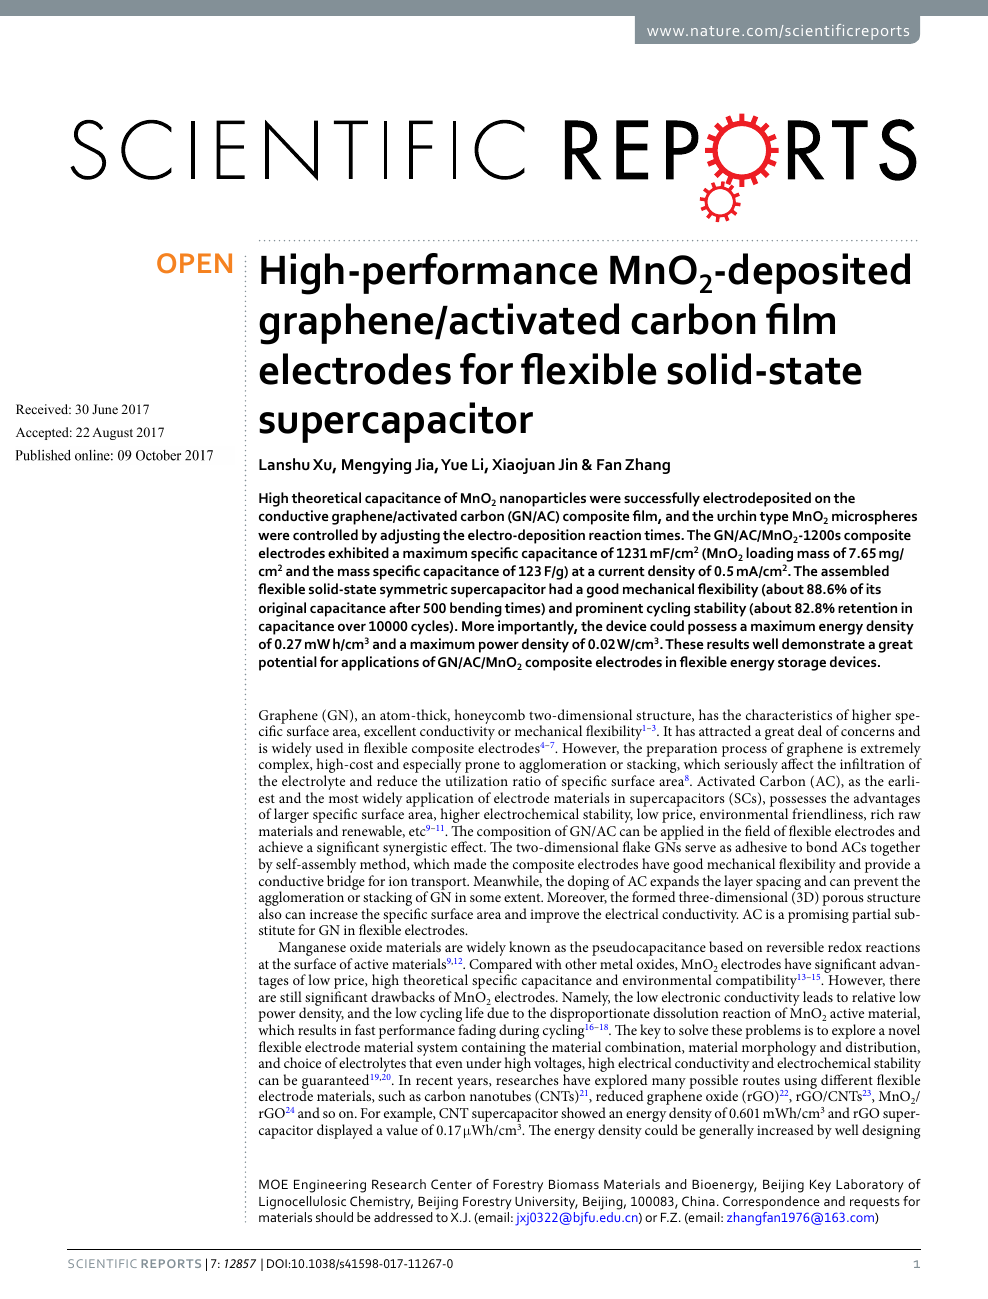 High-performance MnO2-deposited graphene/activated carbon film